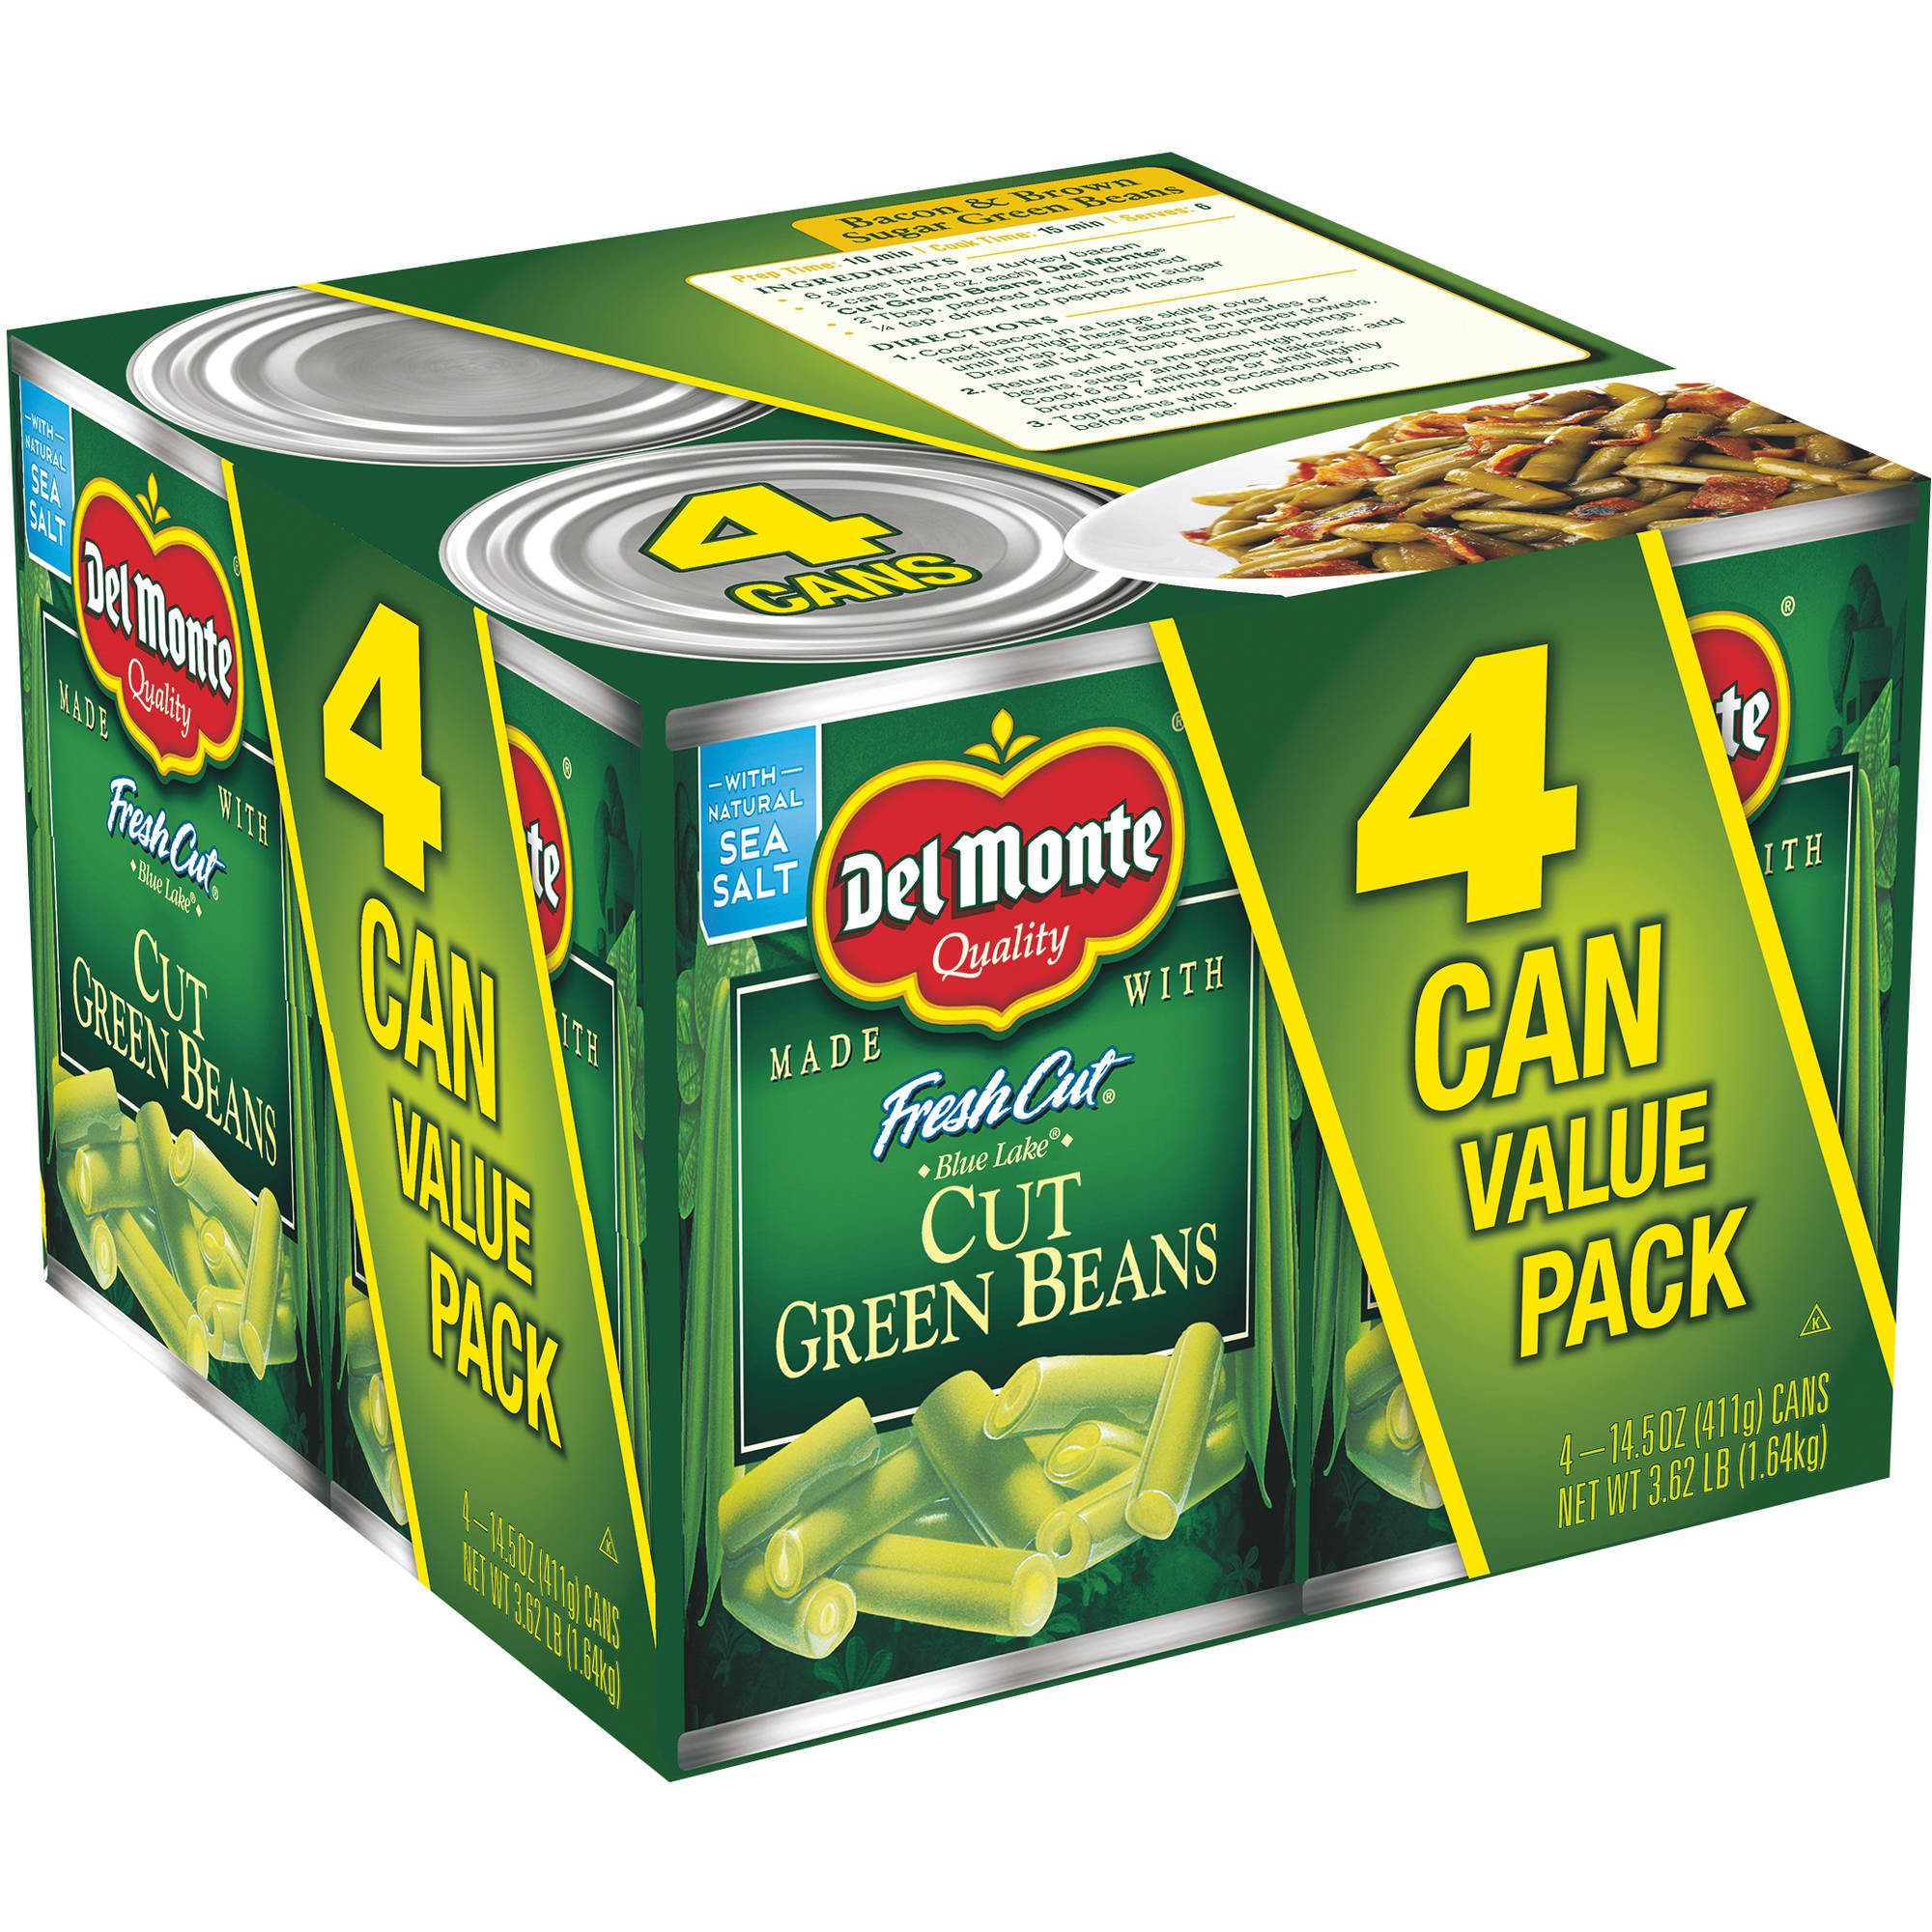 Del Monte Fresh Cut Blue Lake Cut Green Beans, 14.5 oz, 4 count